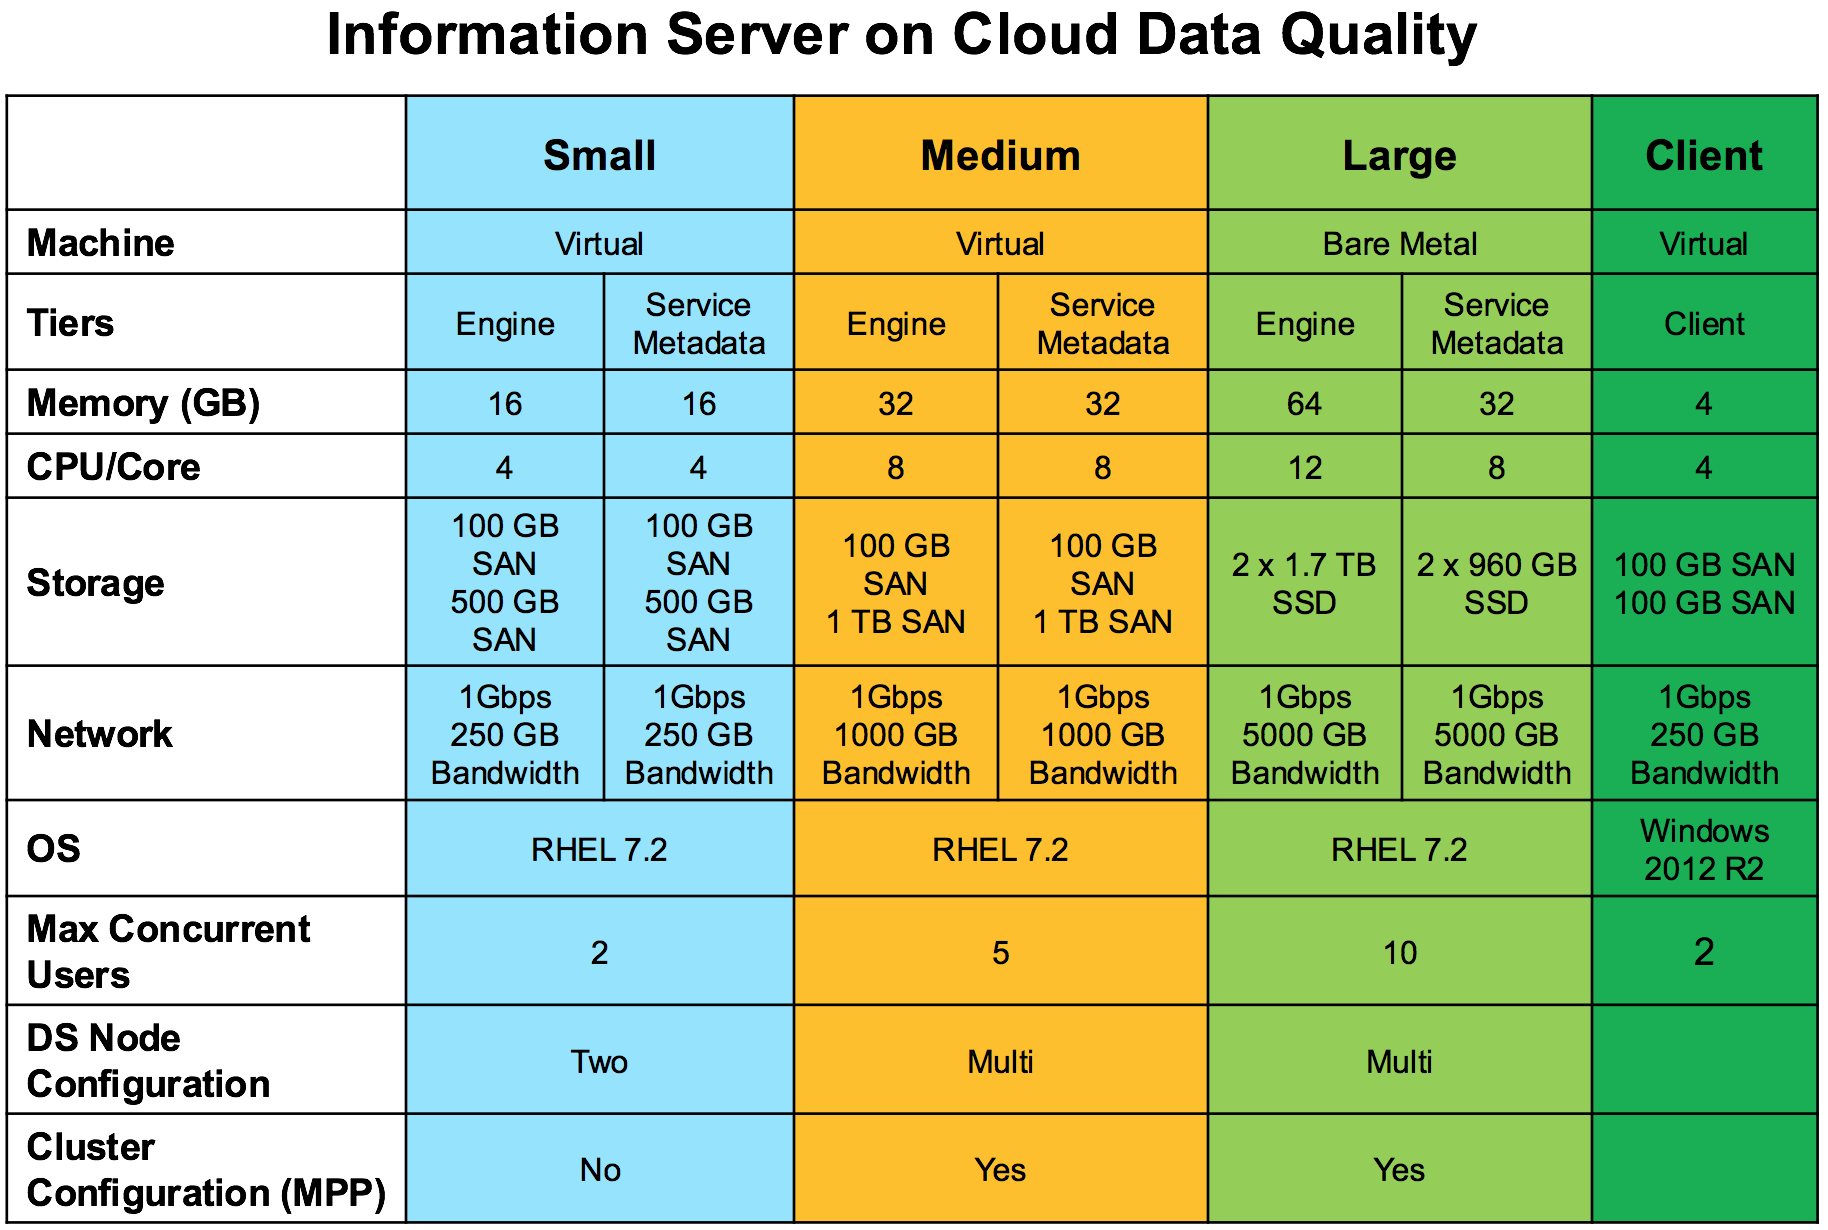 Information Server on Cloud Data Quality Packages